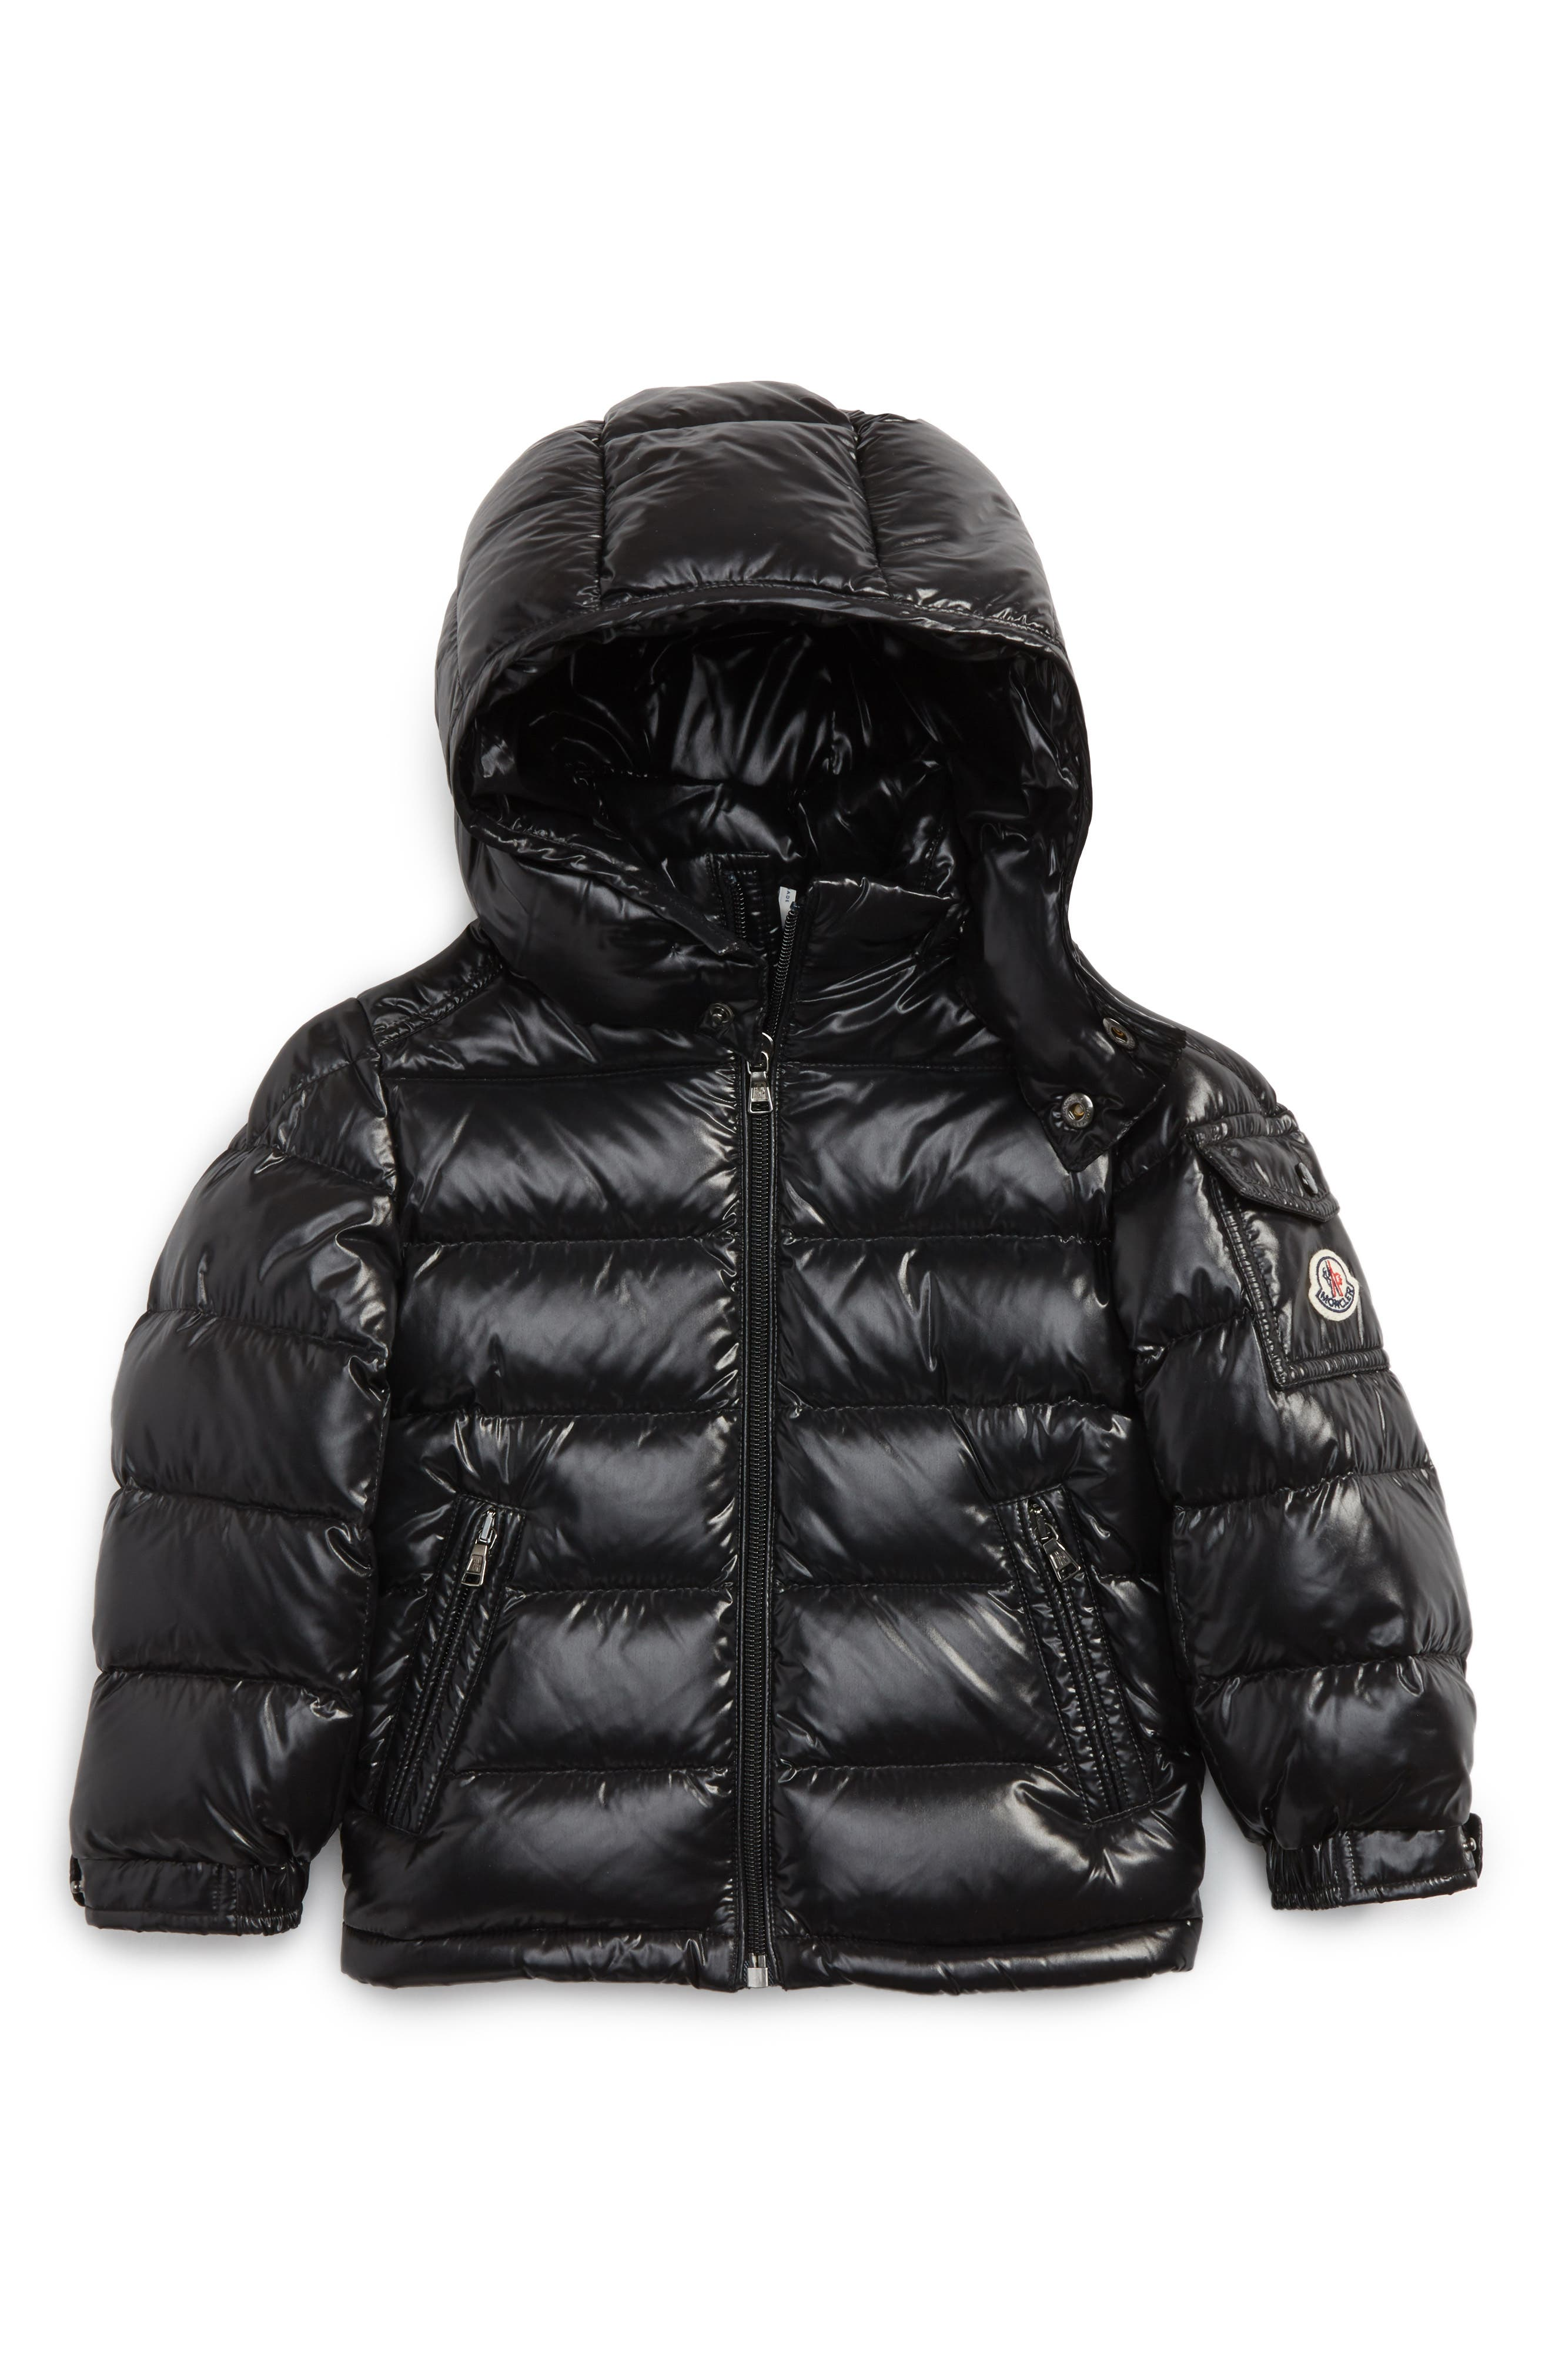 Alternate Image 1 Selected - Moncler Maya Hooded Down Jacket (Toddler Boys)